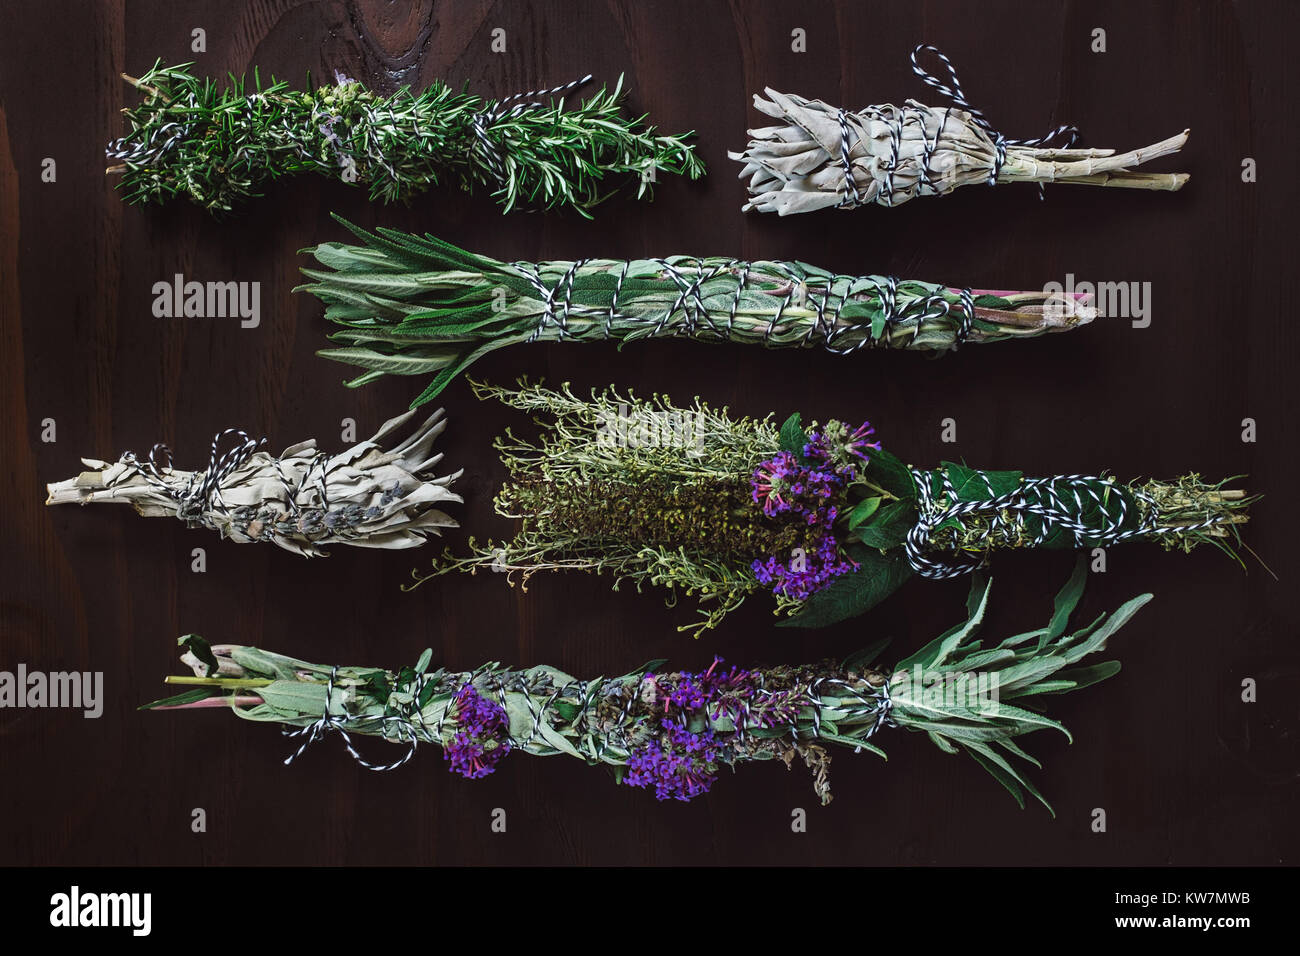 Fresh Herb Bundles of Rosemary, Sage and Flowers - Stock Image